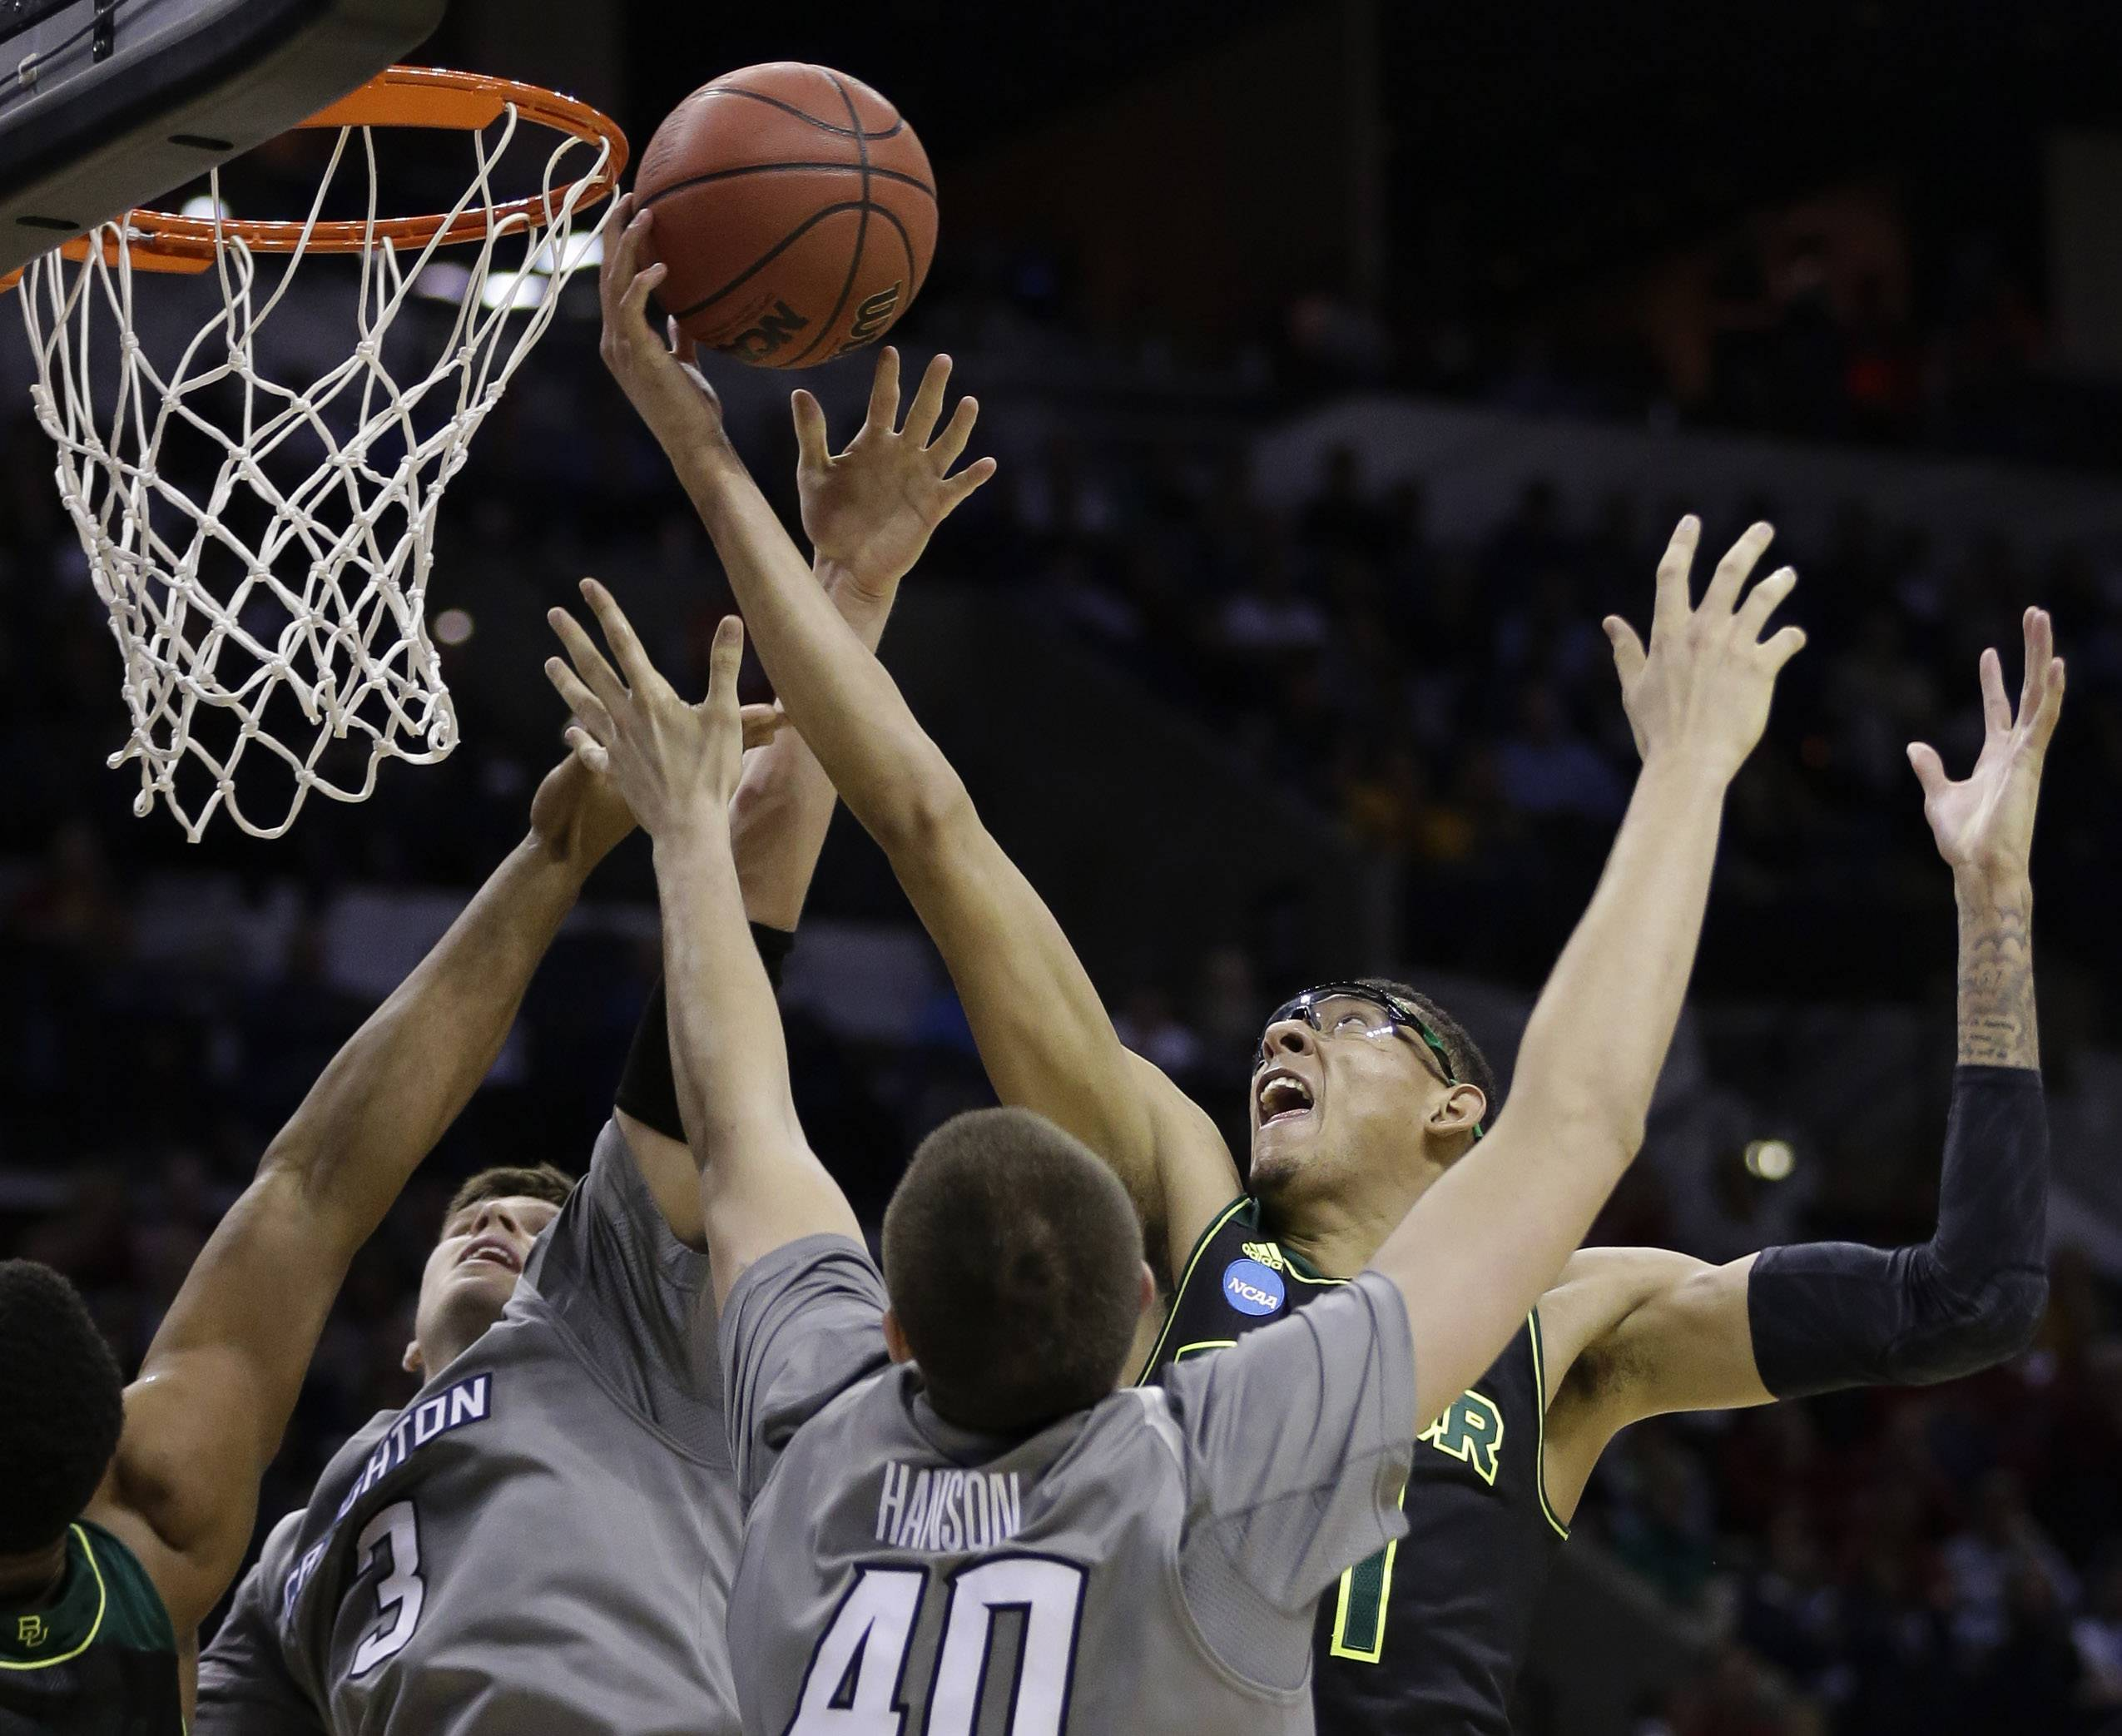 Baylor's Isaiah Austin, right, reaches over Creighton's Doug McDermott (3) and Zach Hanson (40) for a rebound during the first half of a third-round game in the NCAA college basketball tournament Sunday, March 23, 2014, in San Antonio.